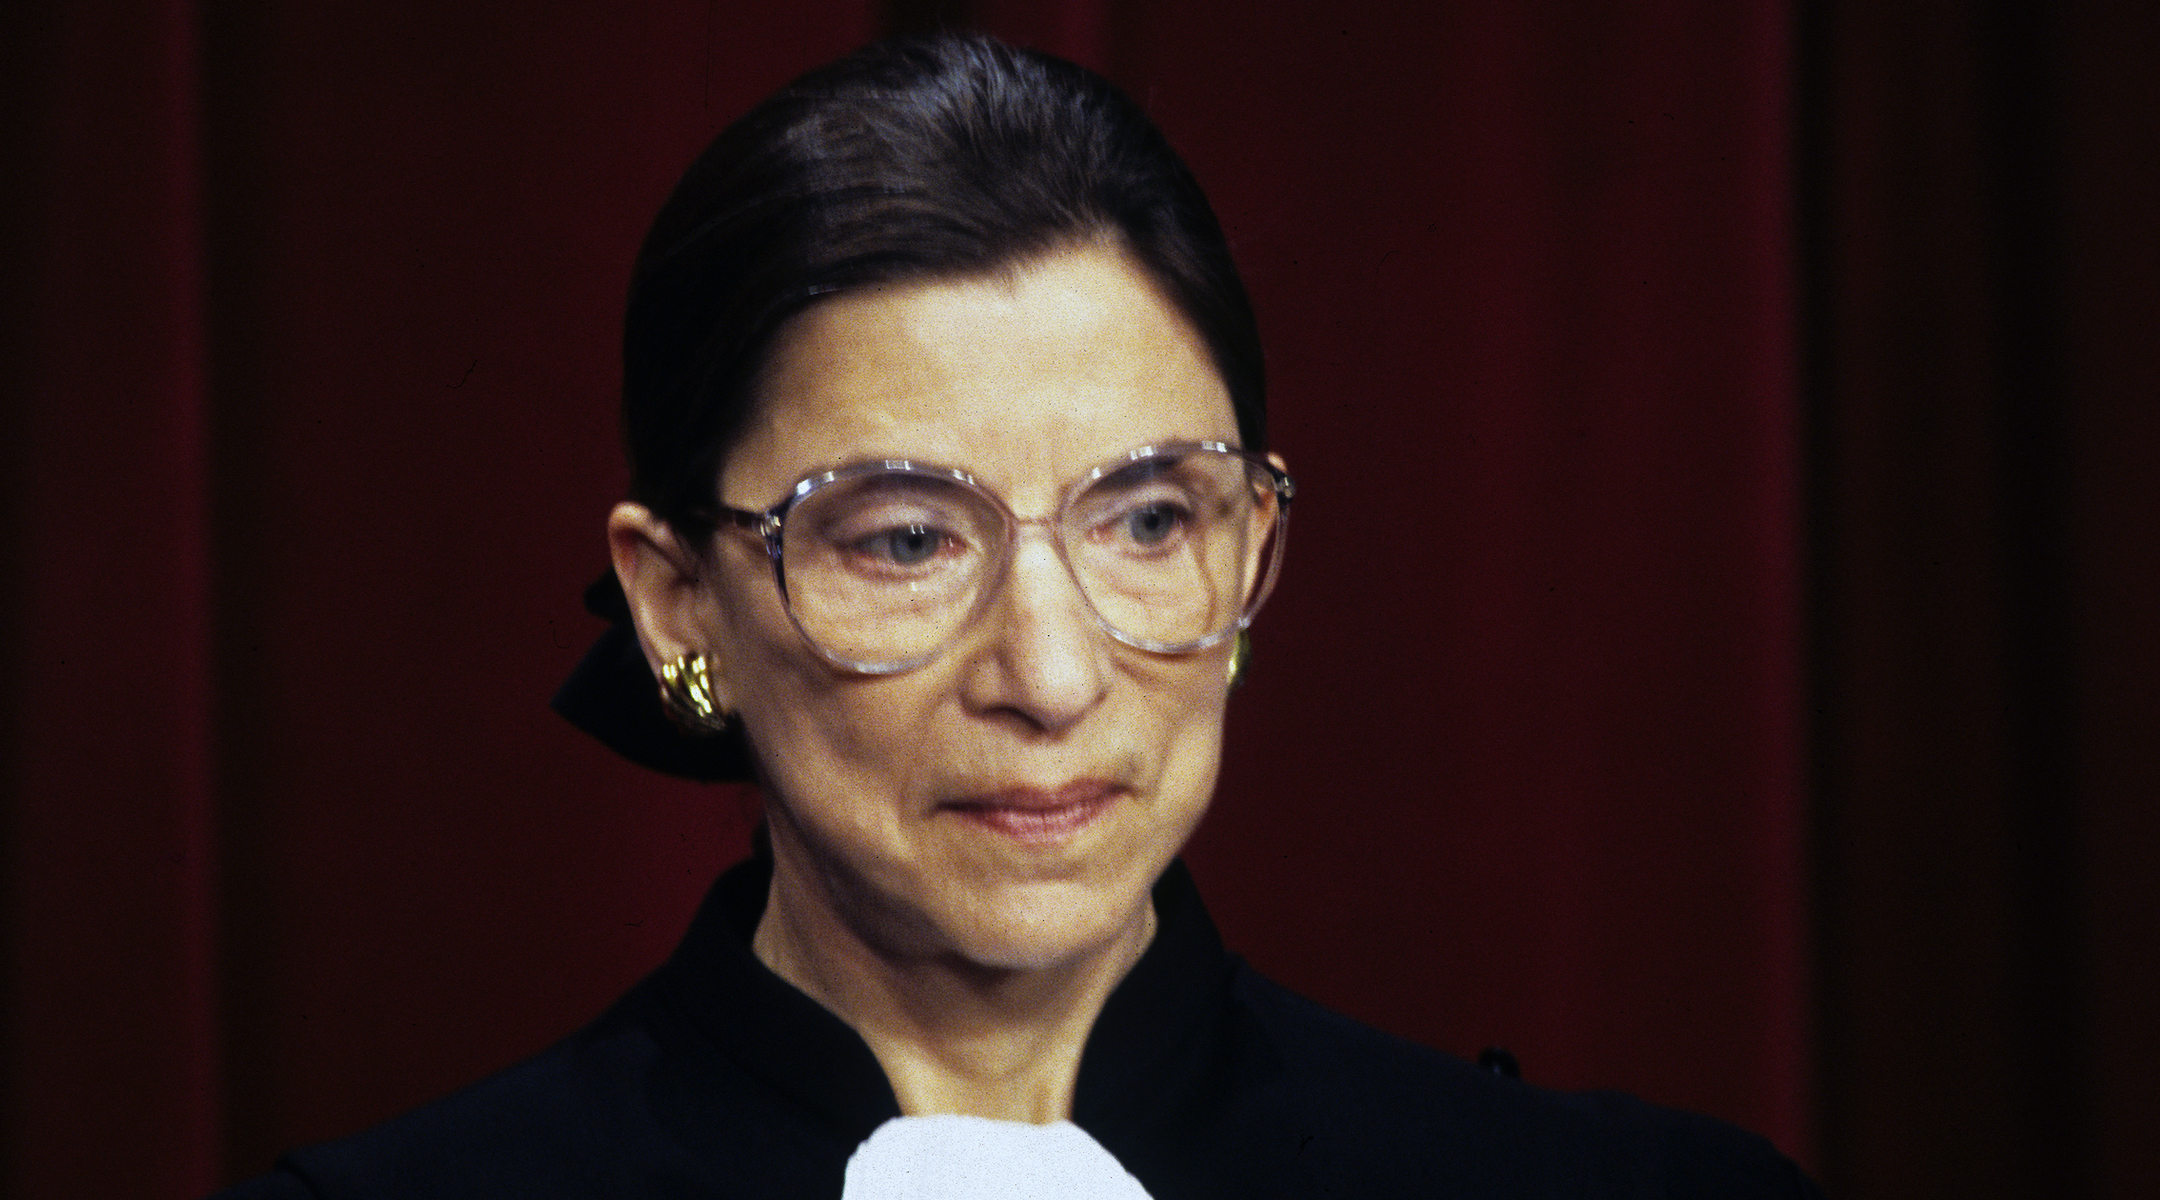 Ruth Bader Ginsburg at the United States Supreme Court, Dec. 3, 1993. (Photo/JTA-Ron Sachs-CNP-Getty Images)